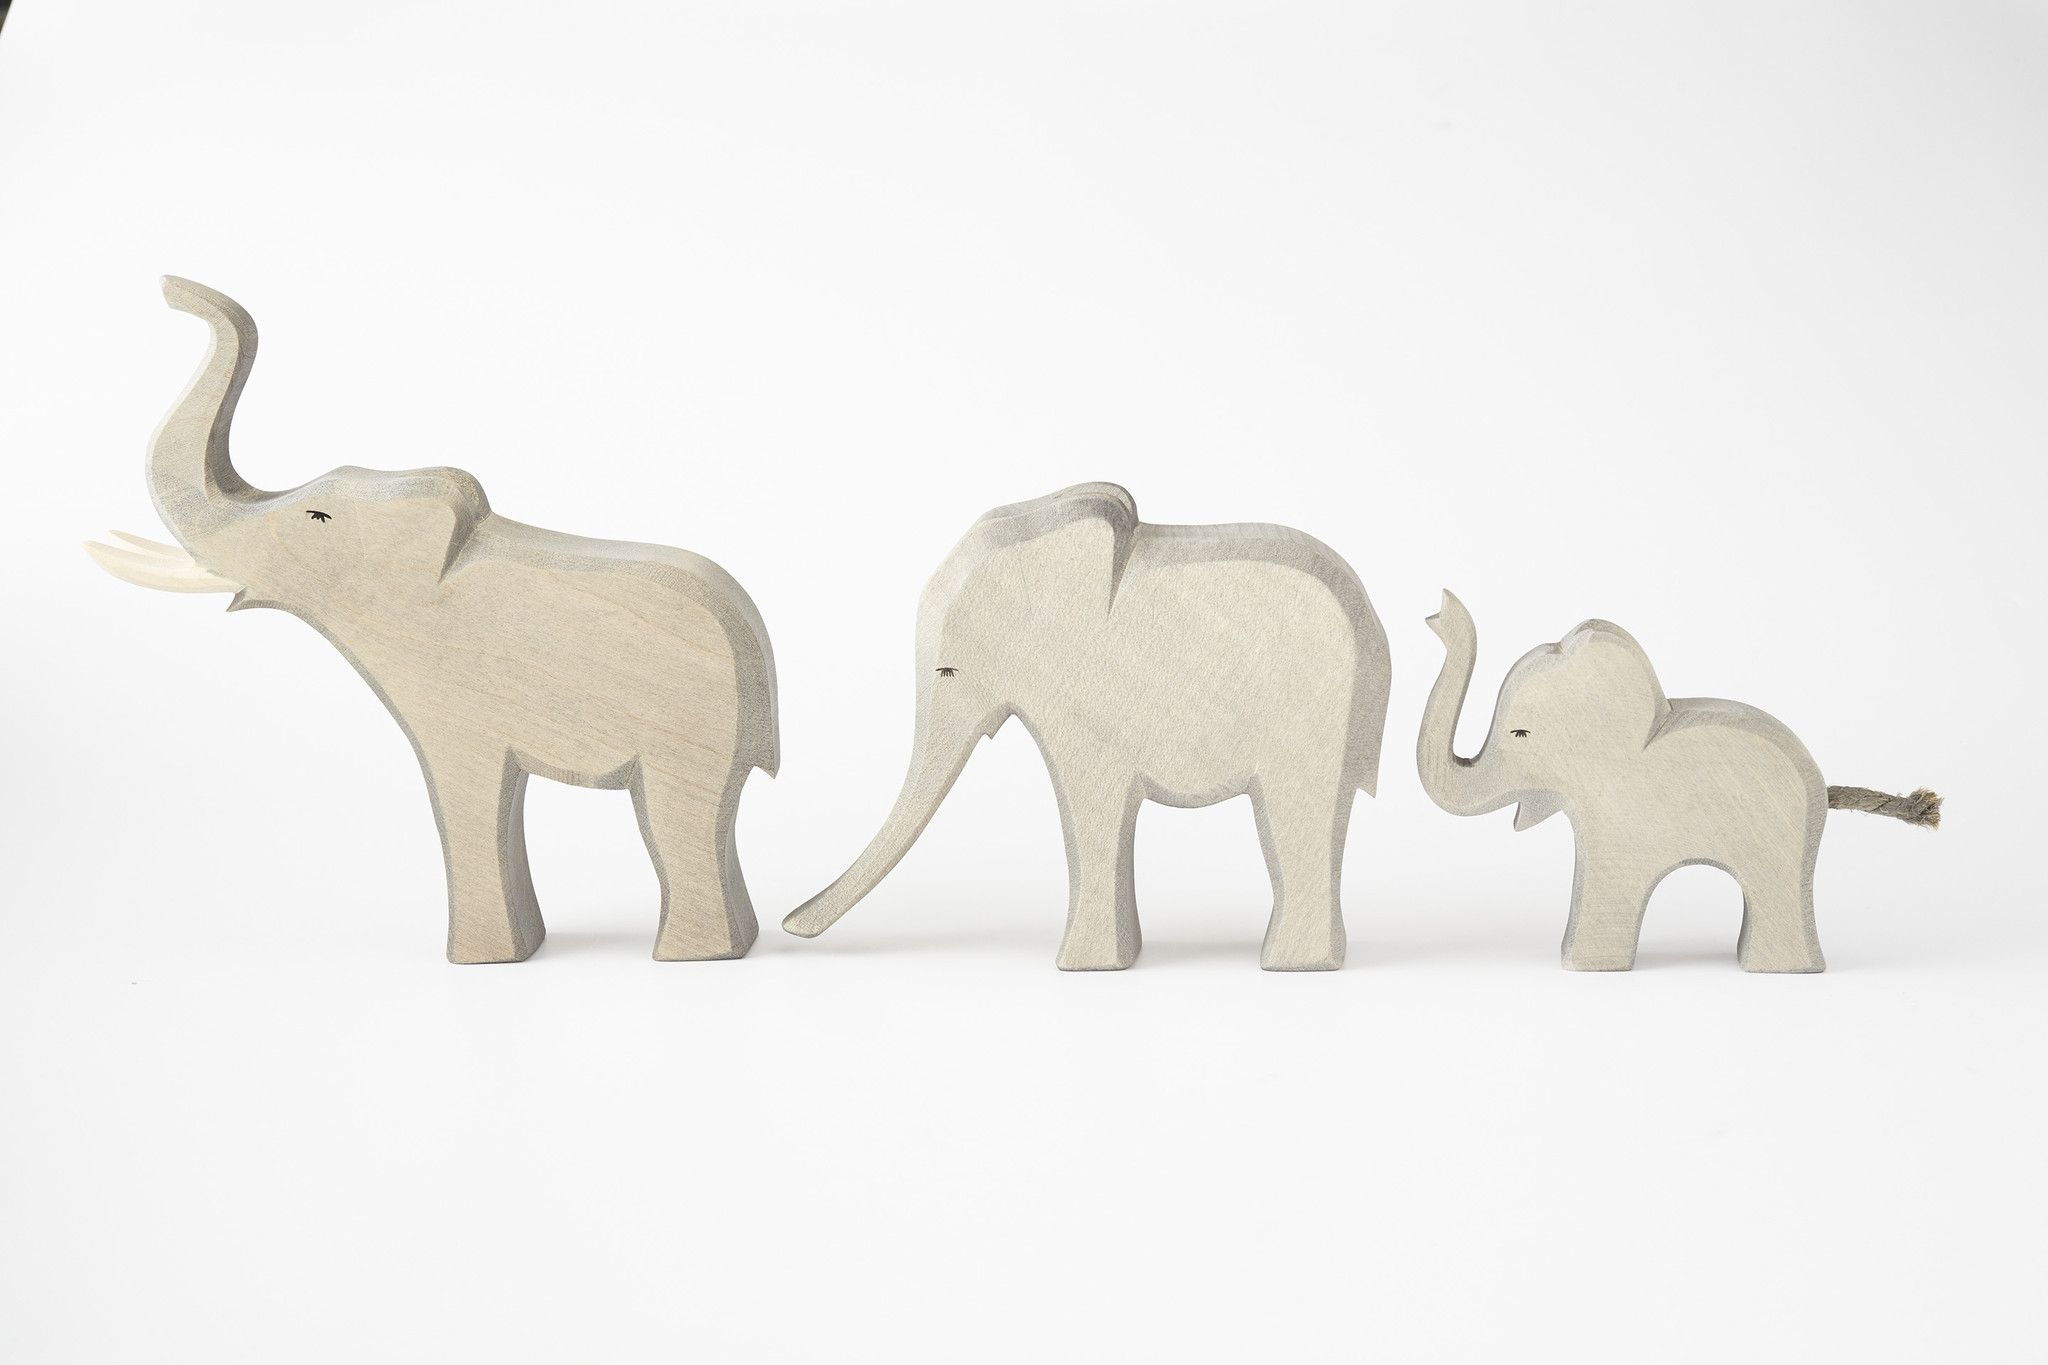 hand-crafted, ostheimer wooden animal toys. carved with